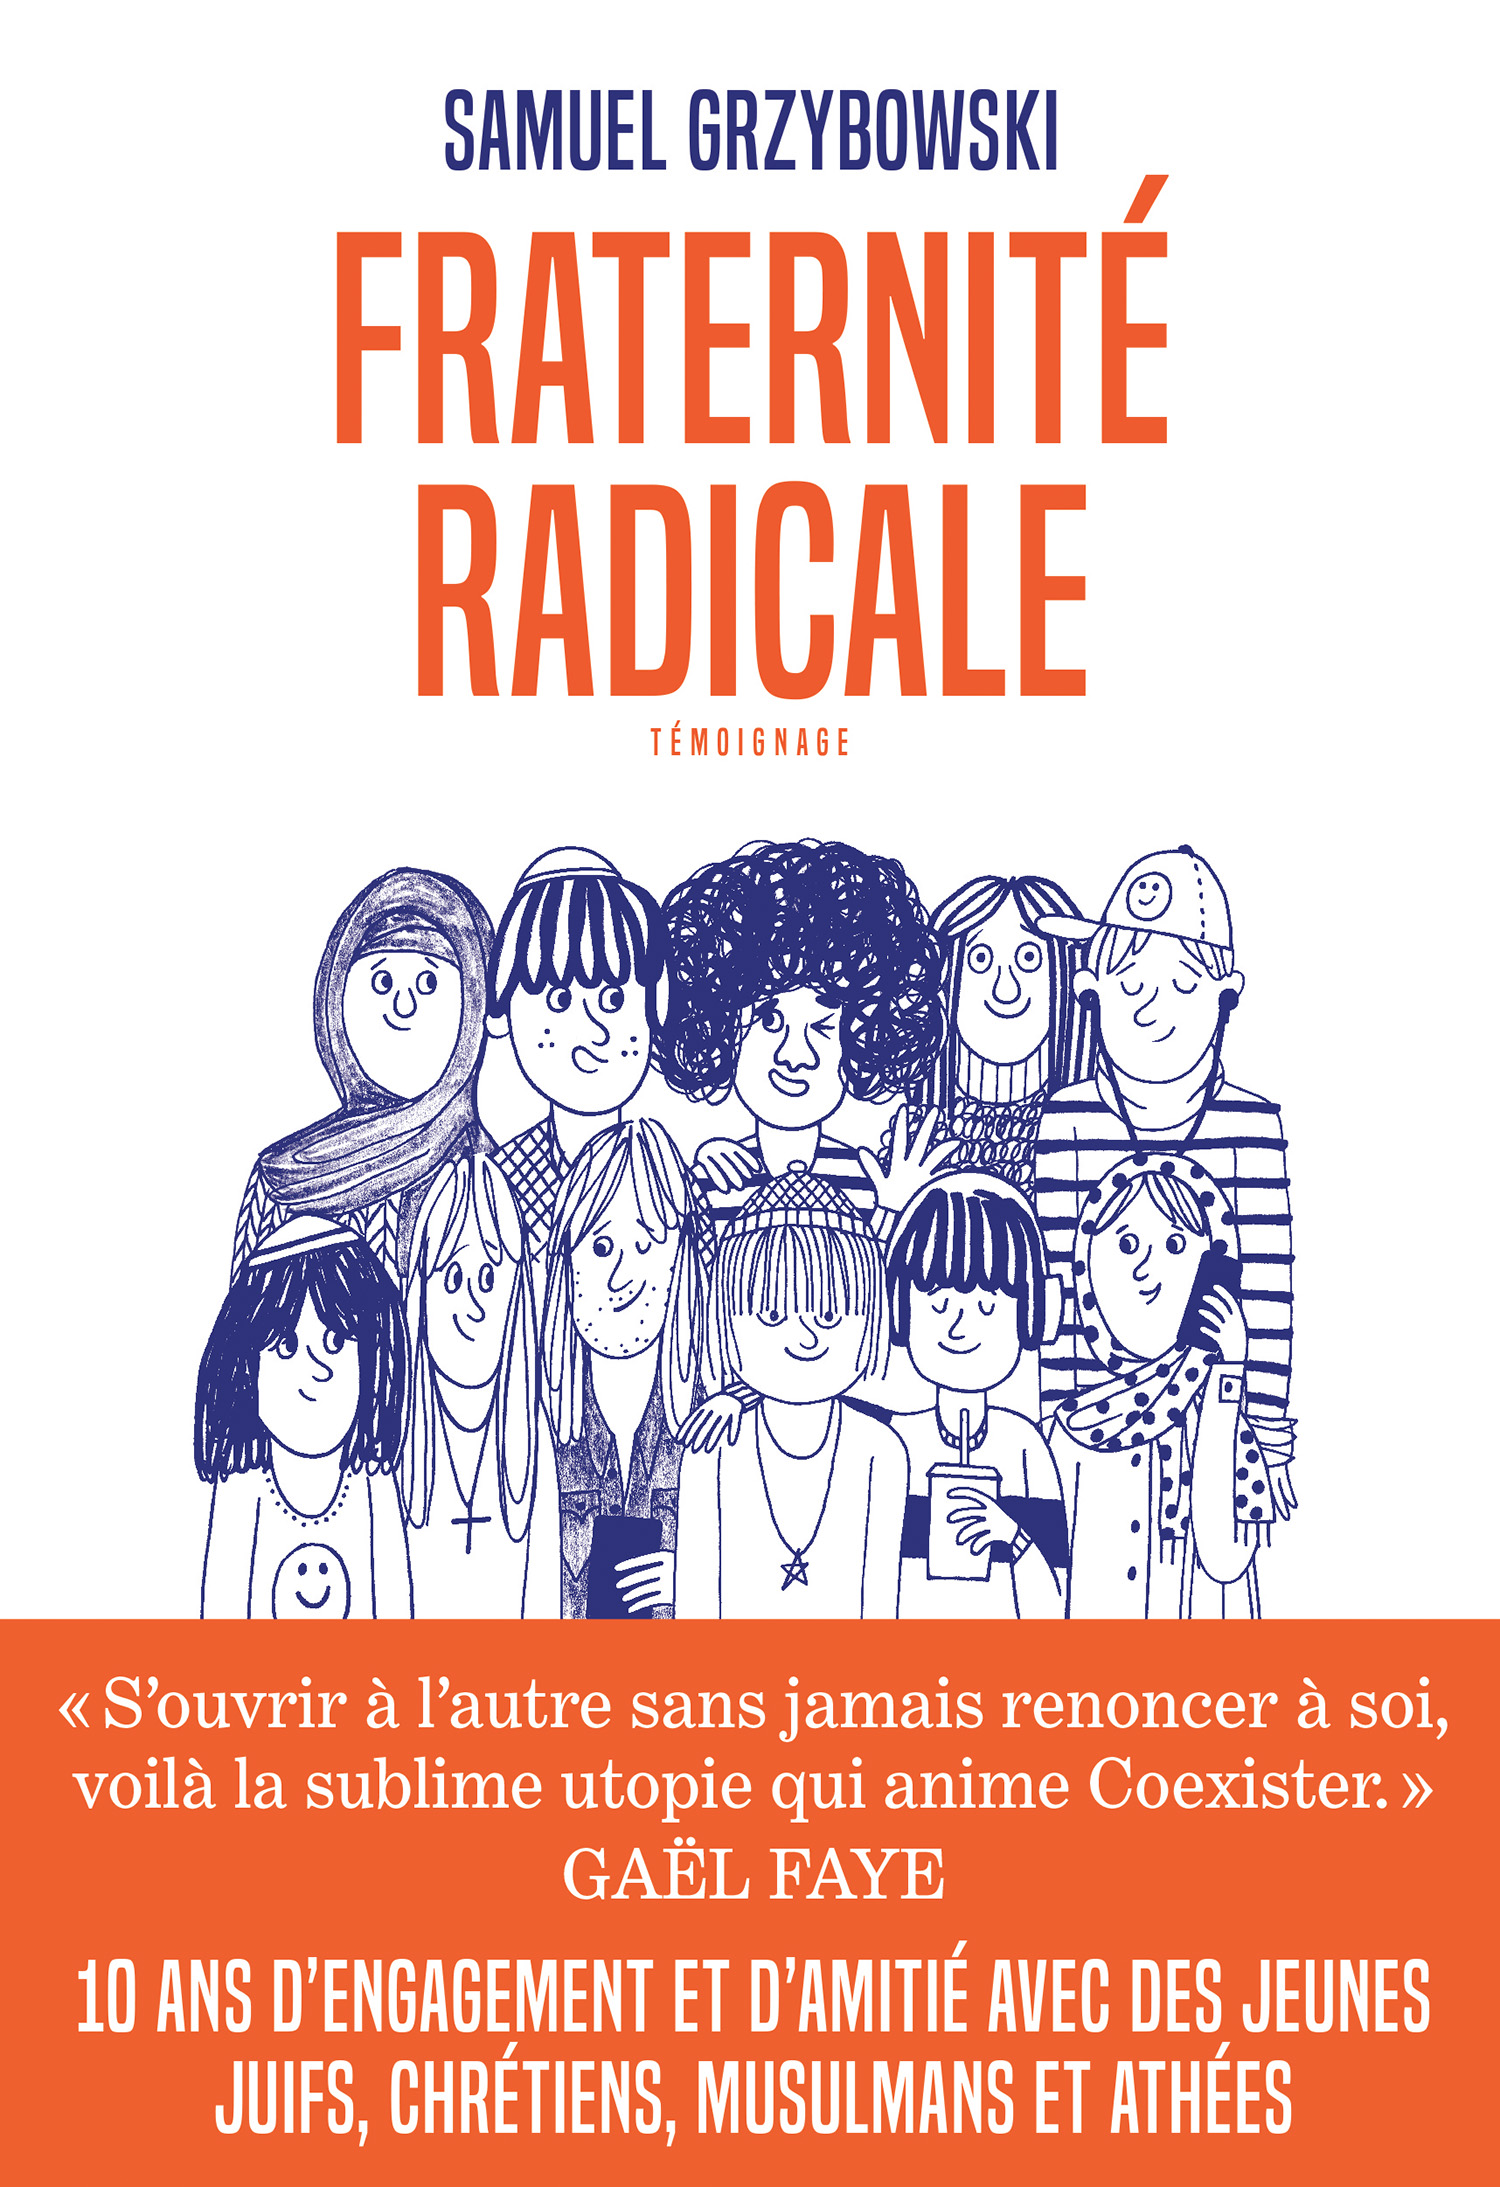 Fraternit? radicale